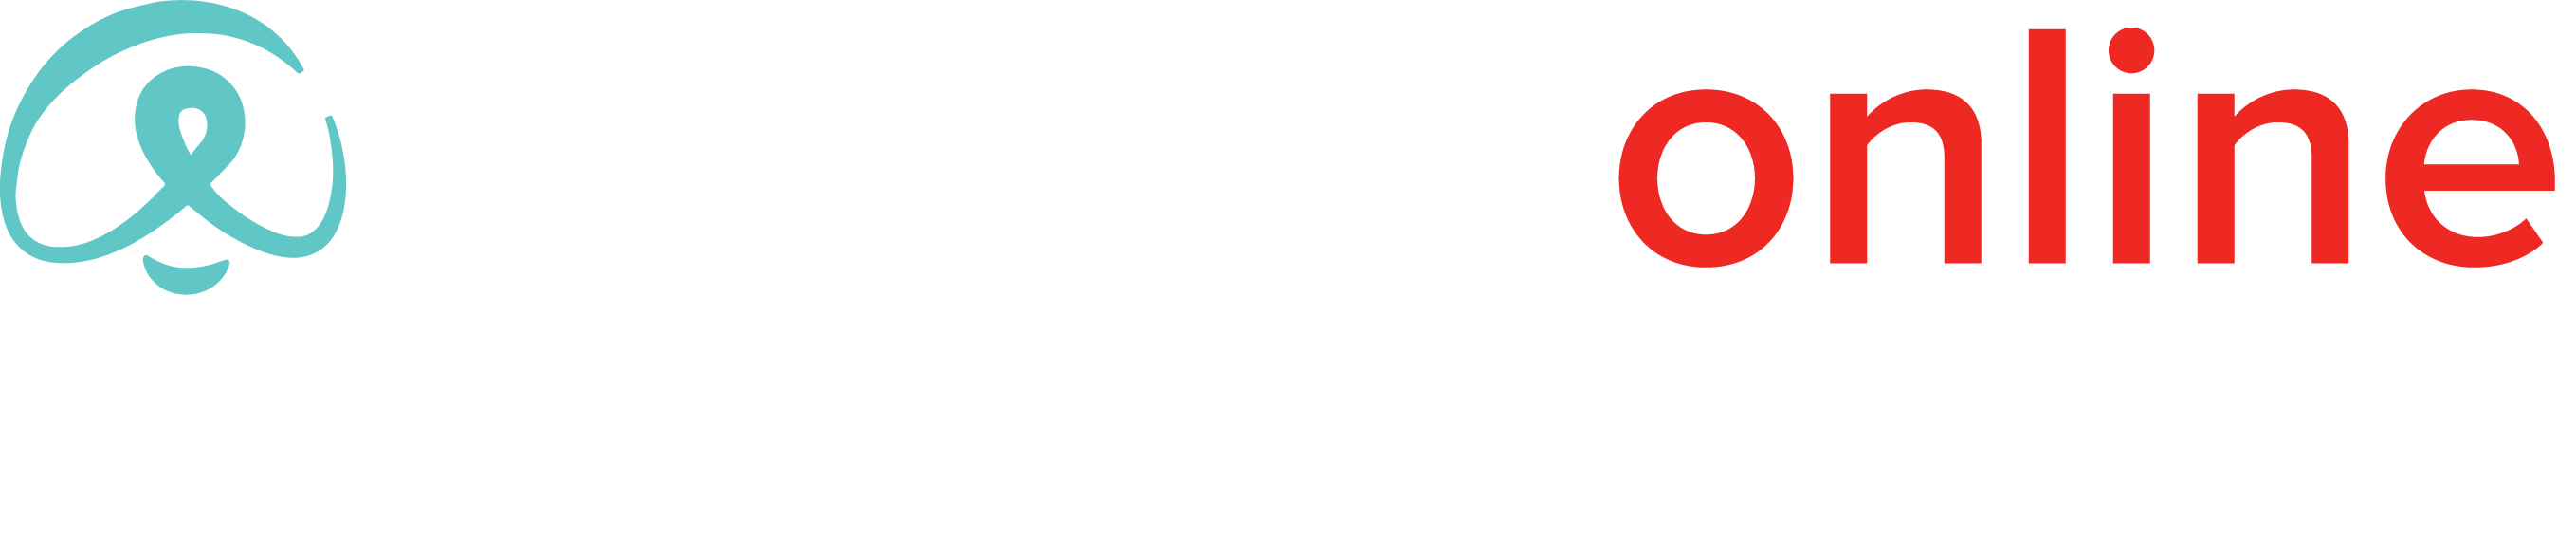 bulldog online: Yoga, Rebooted